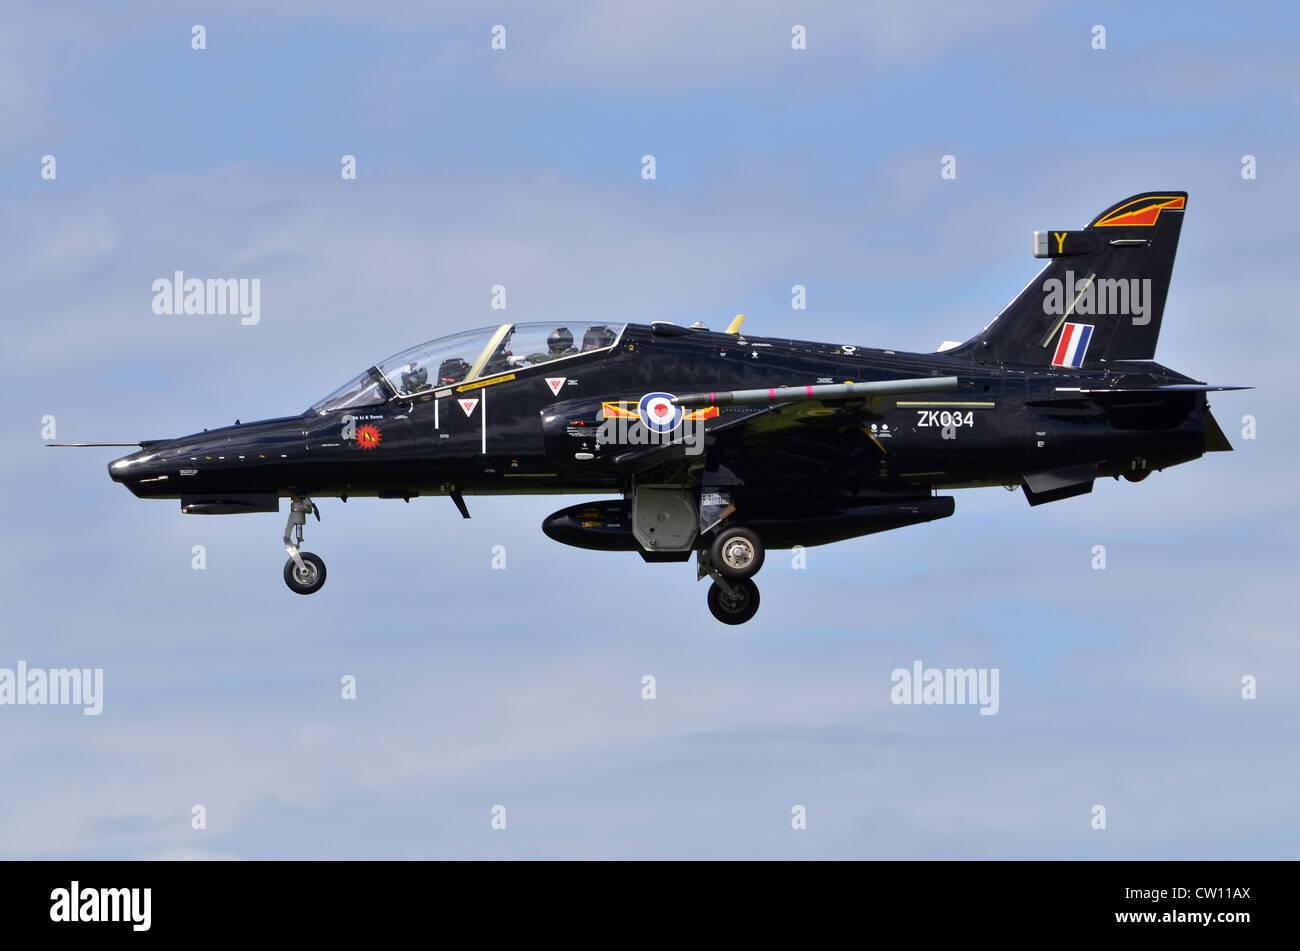 BAE Systems Hawk T2 aircraft operated by the RAF on approach for landing at RAF Fairford - Stock Image